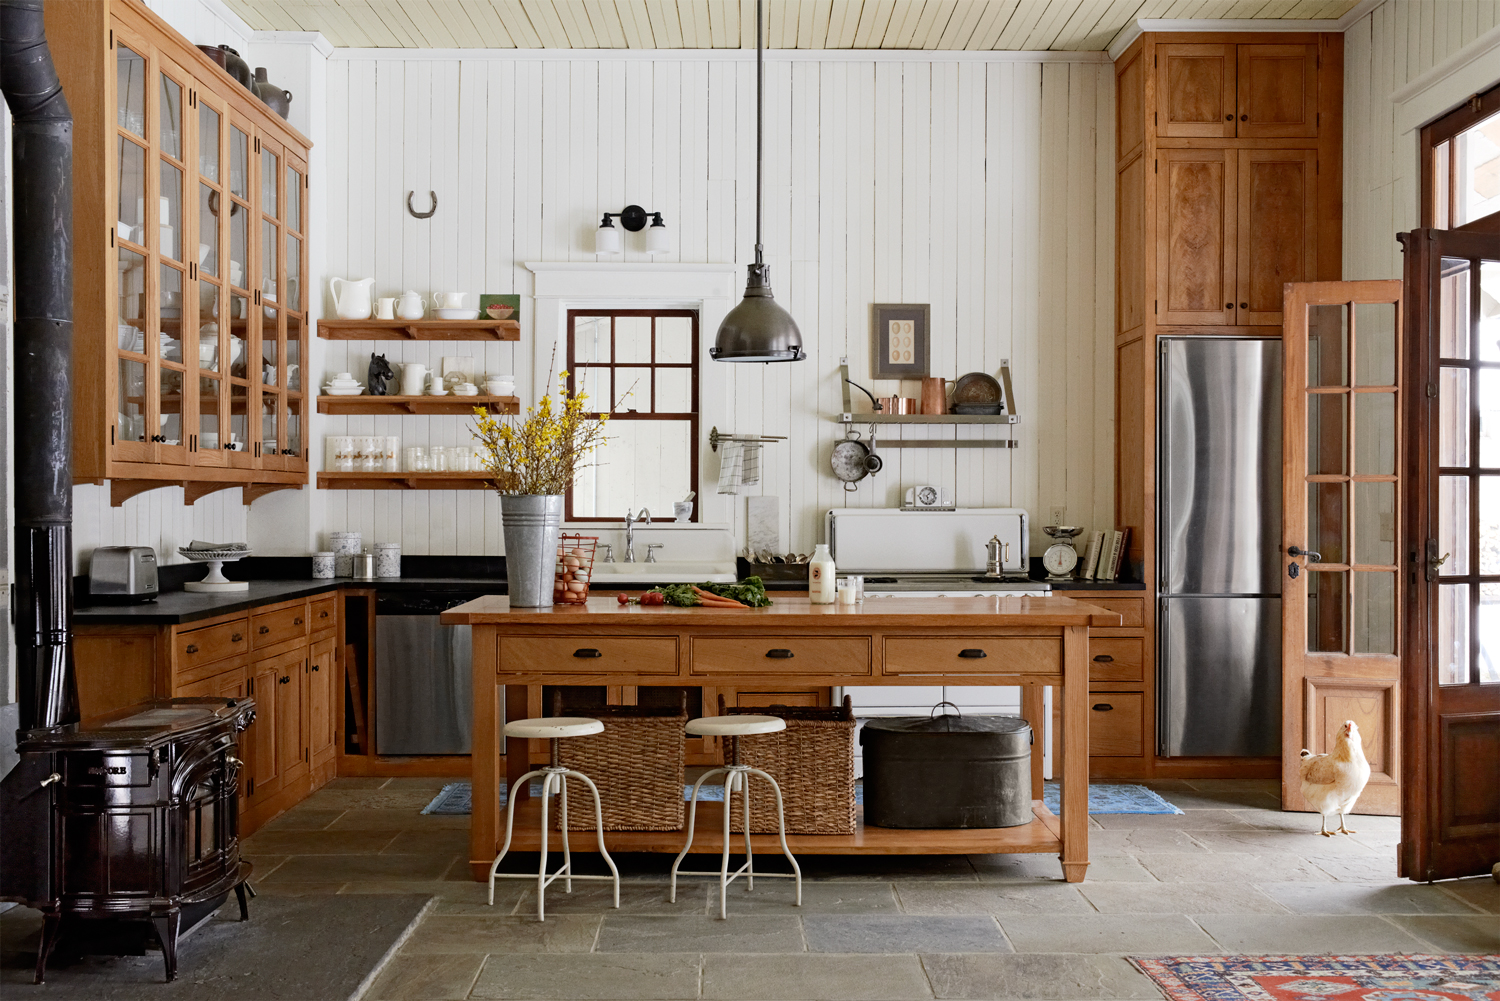 country kitchens 100+ kitchen design ideas - pictures of country kitchen decorating  inspiration XVRCMNY